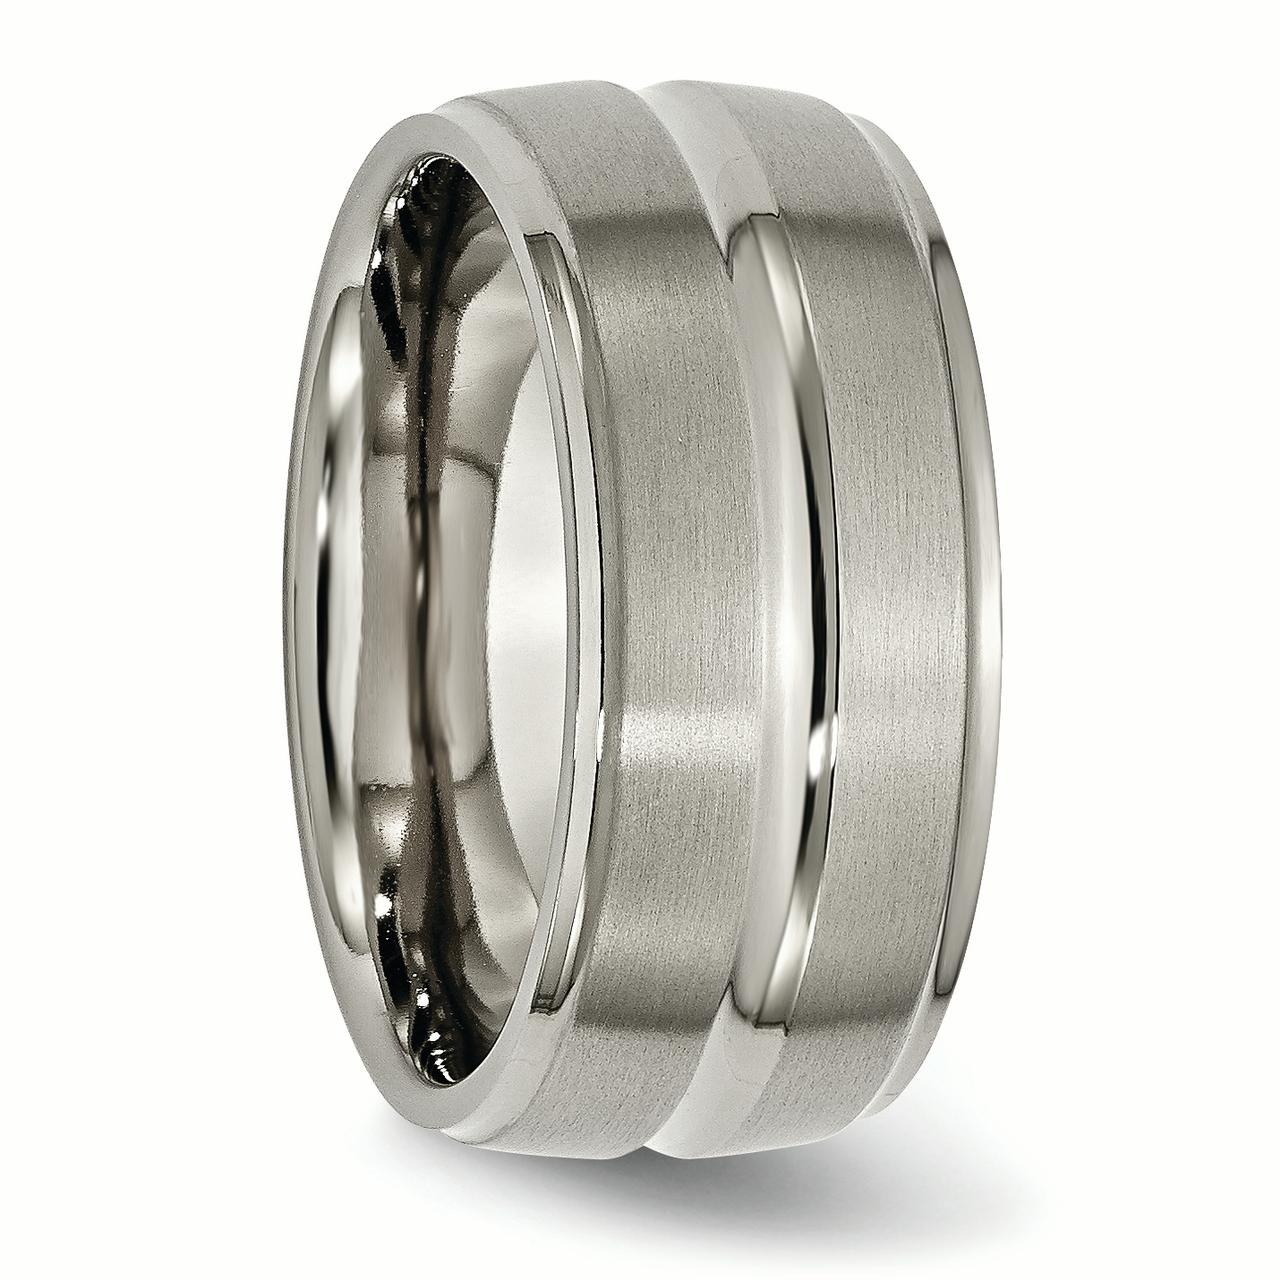 Titanium Grooved Ridged Edge 10mm Brushed Wedding Ring Band Size 13.50 Fashion Jewelry Gifts For Women For Her - image 3 de 6